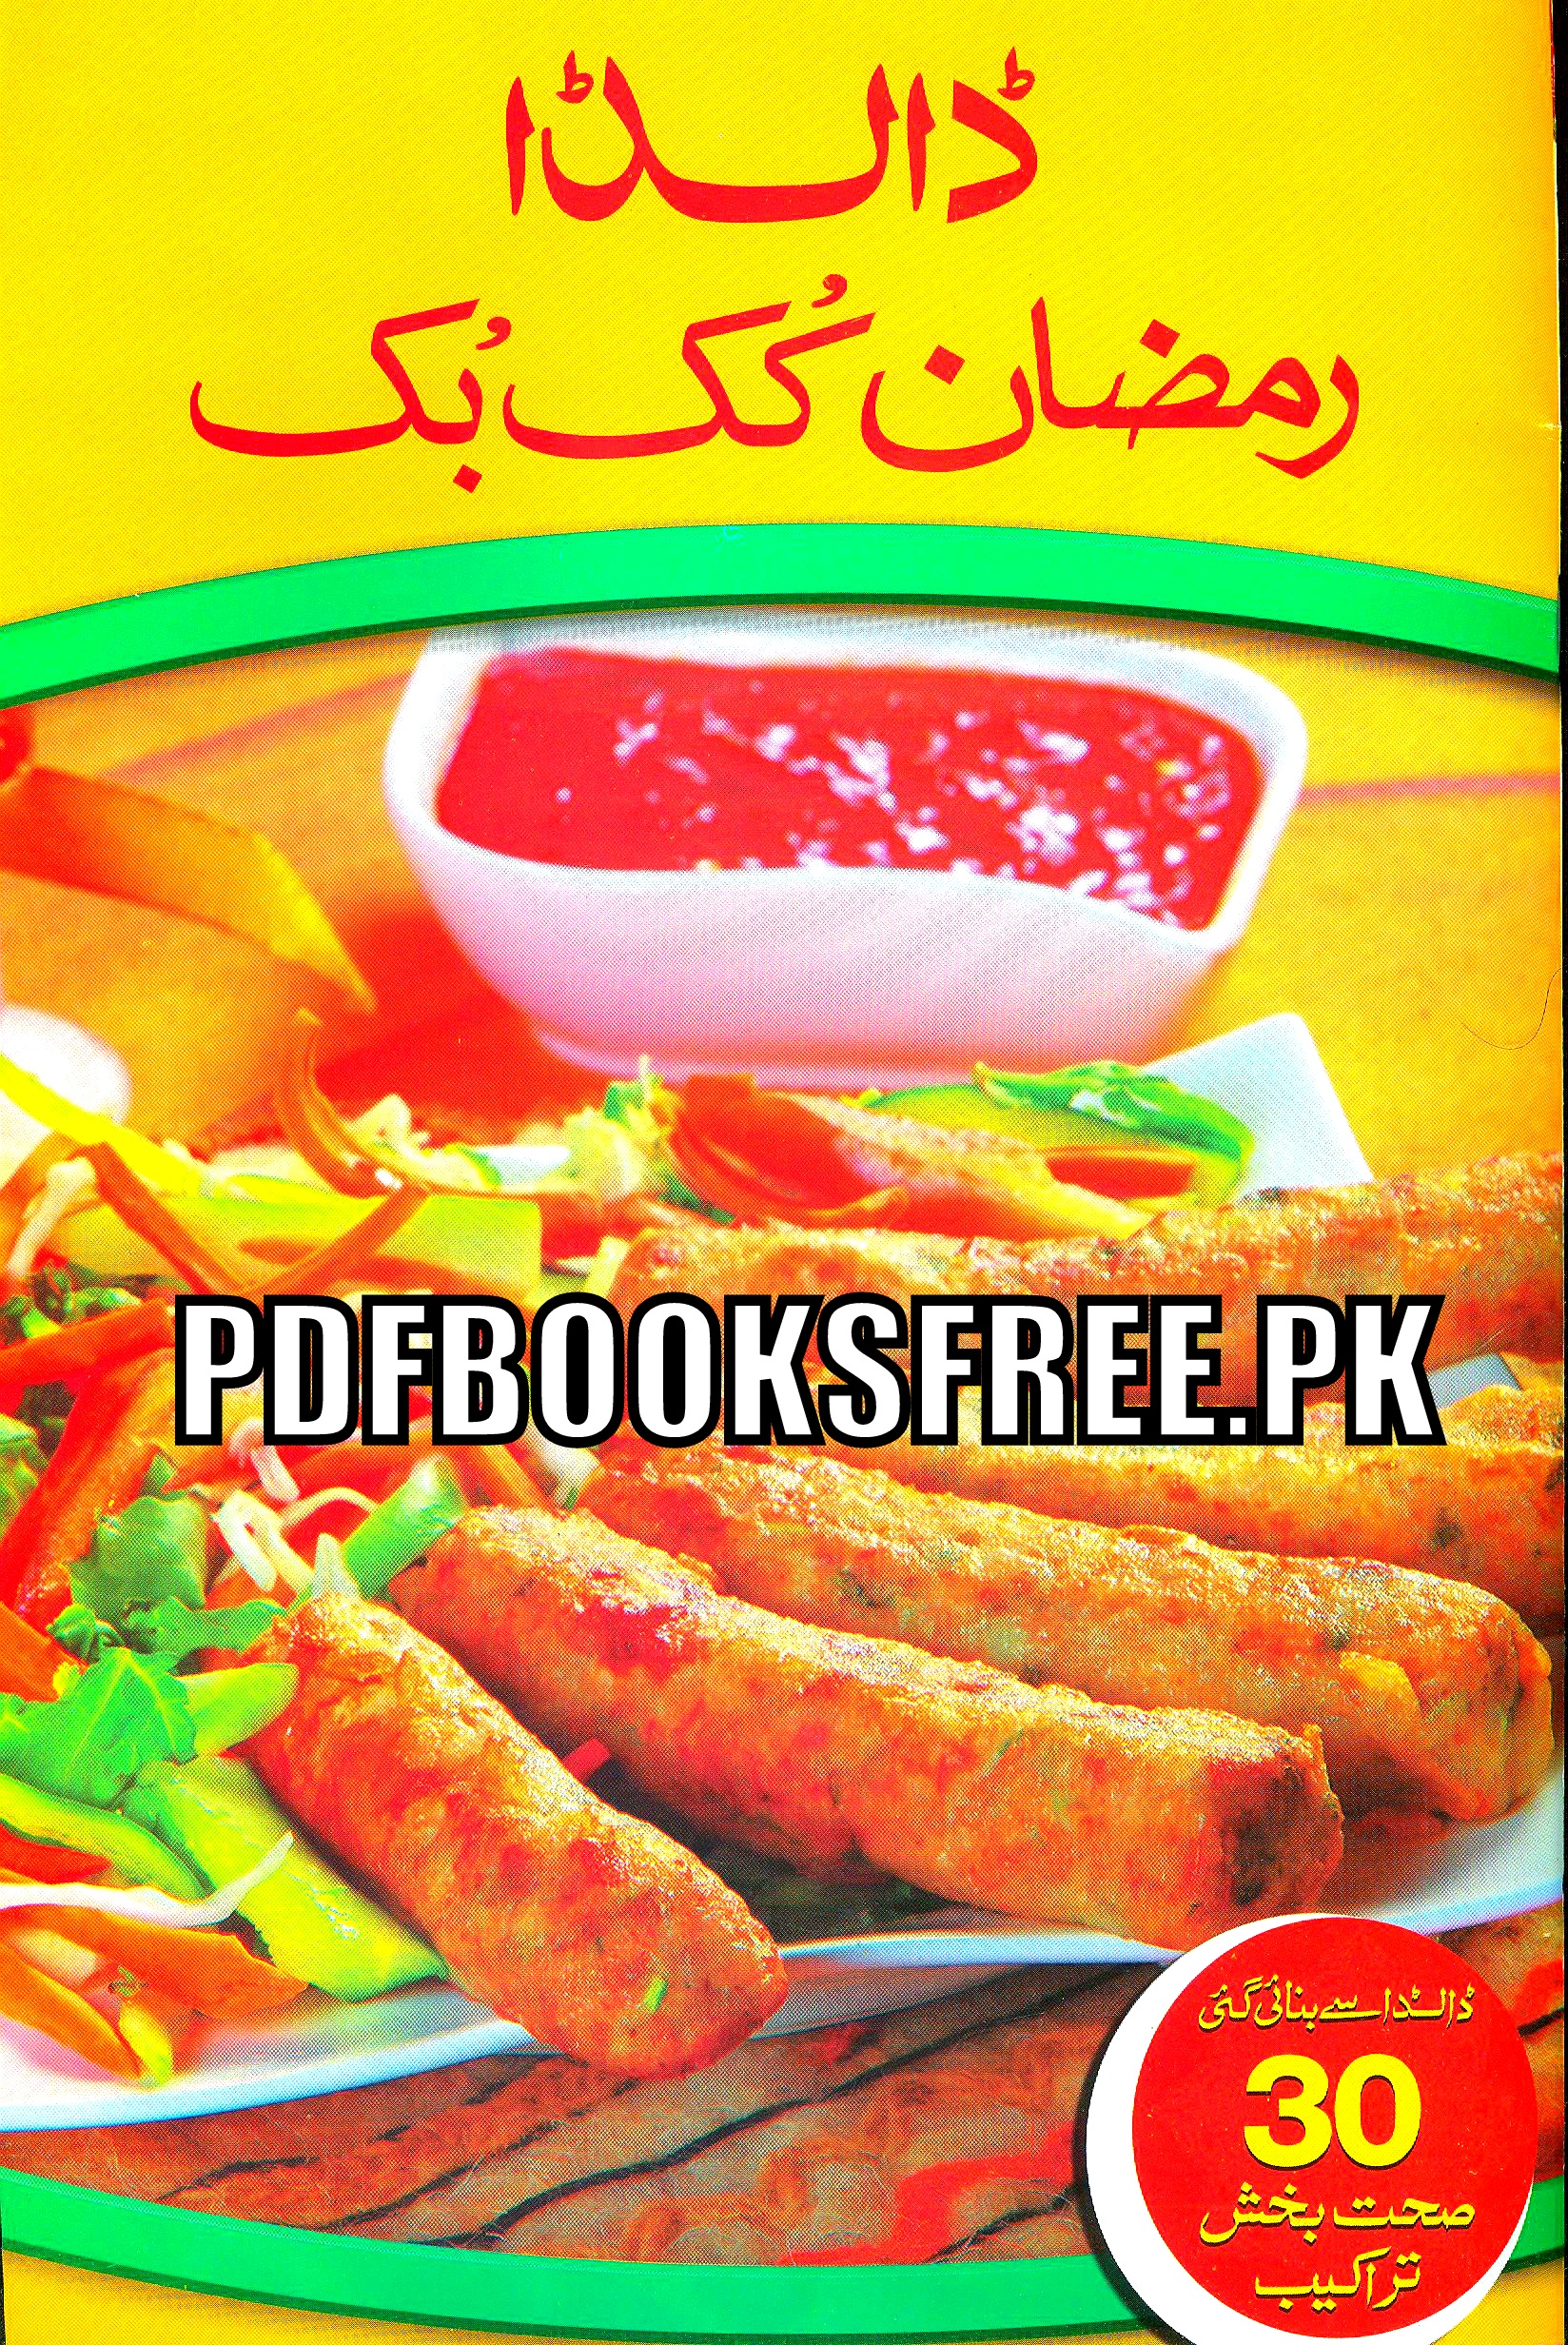 Ramadan cookbook urdu pdf free download and read online ramadan cookbook urdu pdf free download forumfinder Choice Image